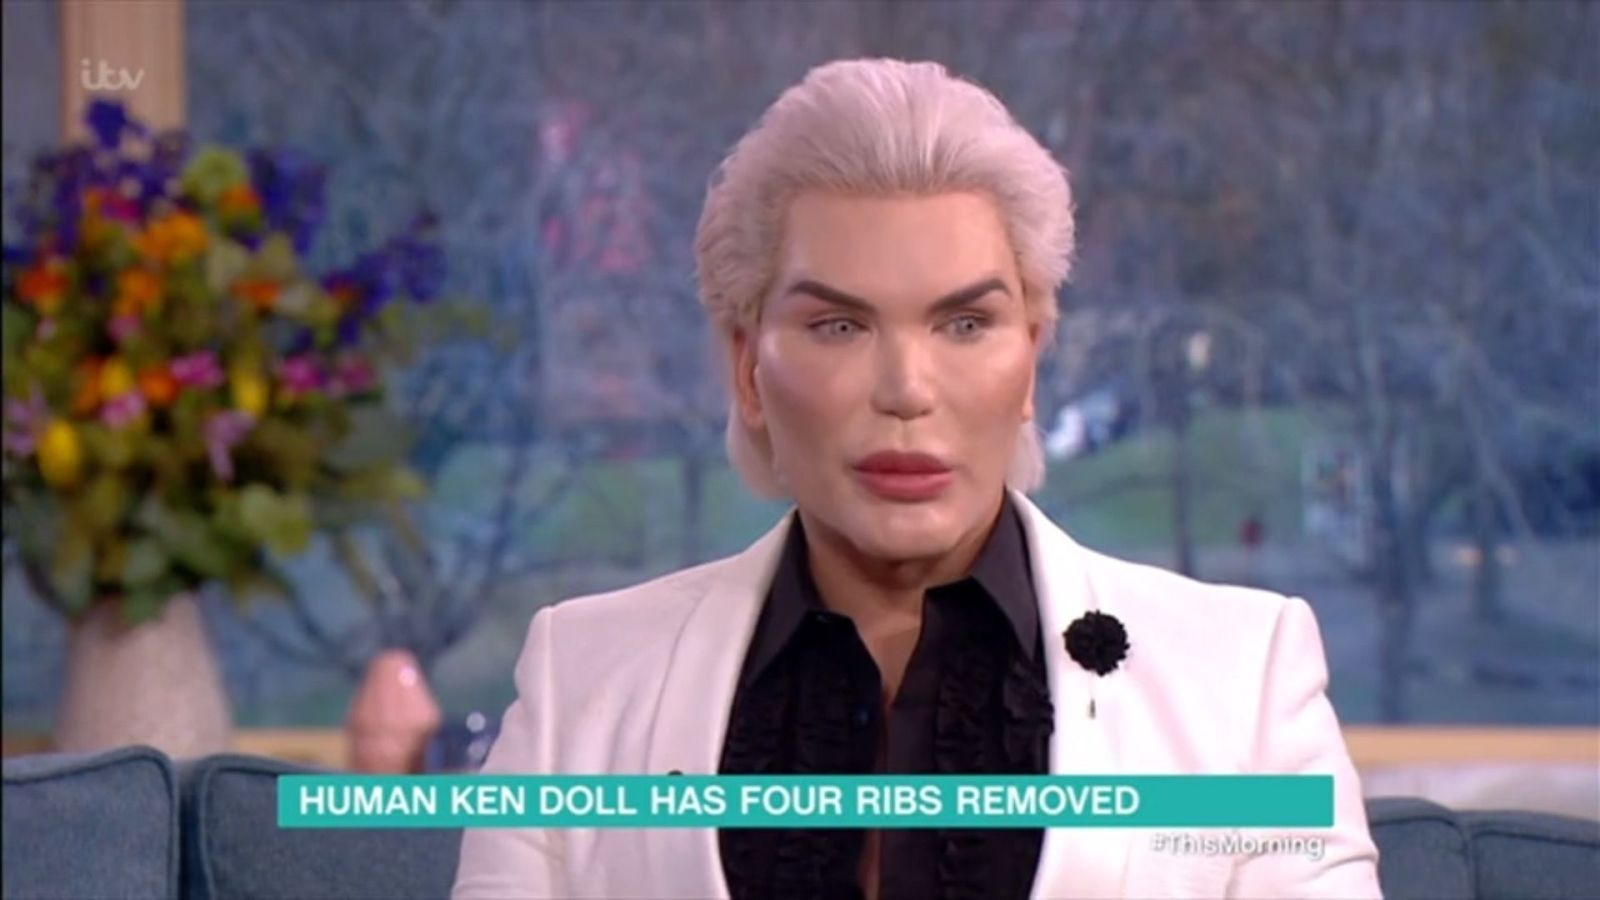 'Human Ken Doll' Rodrigo Alves says he has had four ribs removed in his quest for the 'perfect' body